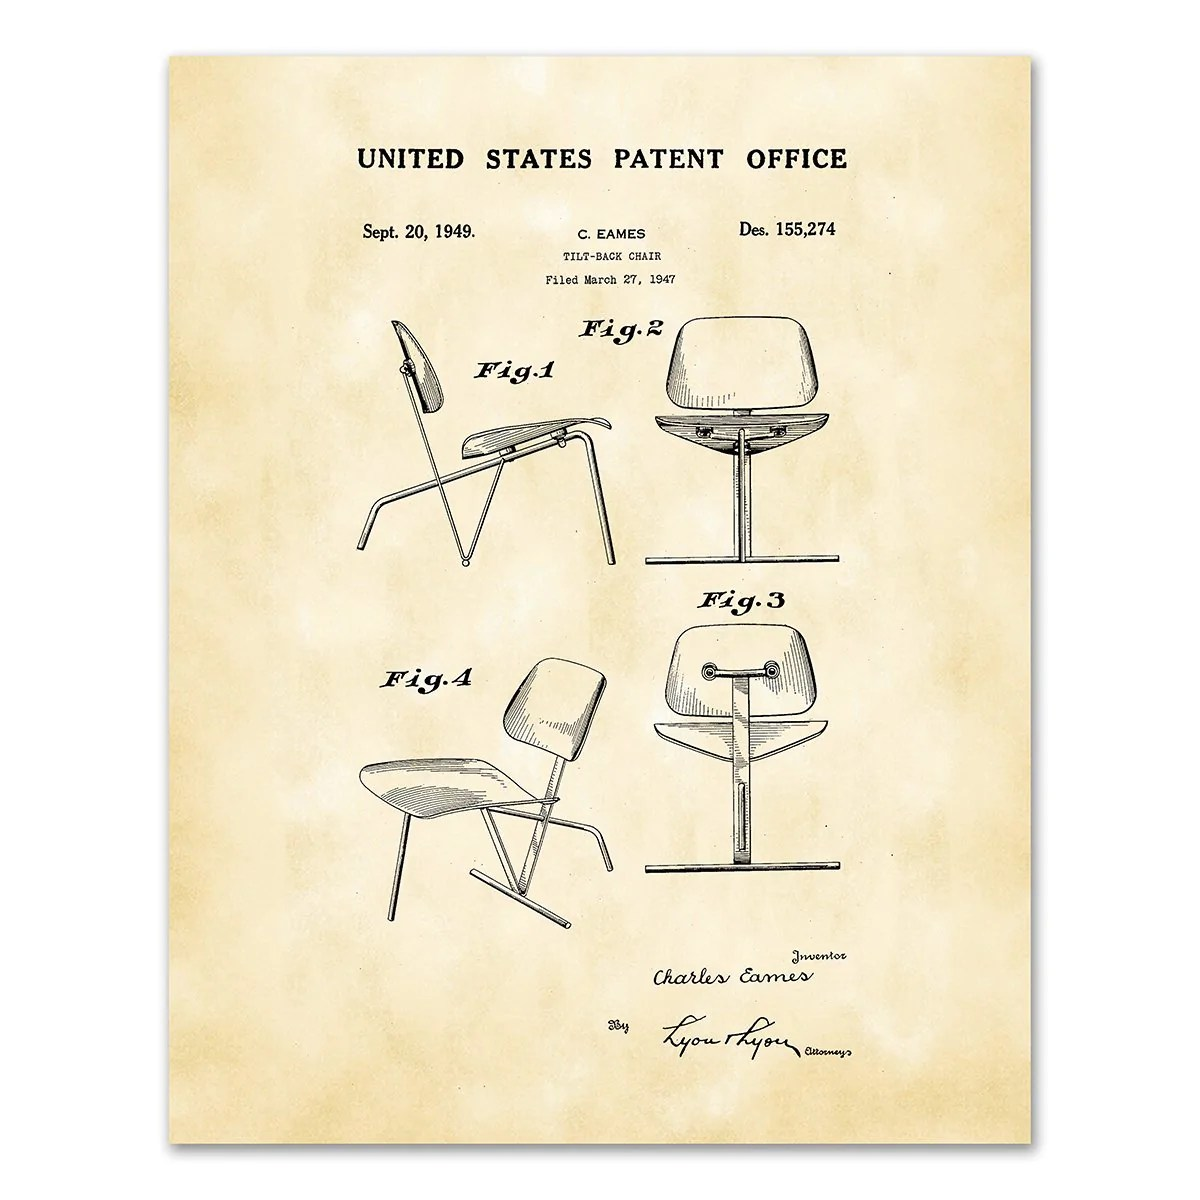 Eames Chair Patent Patent Drawing Ds155274 Tilt Back Chair By Charles Eames